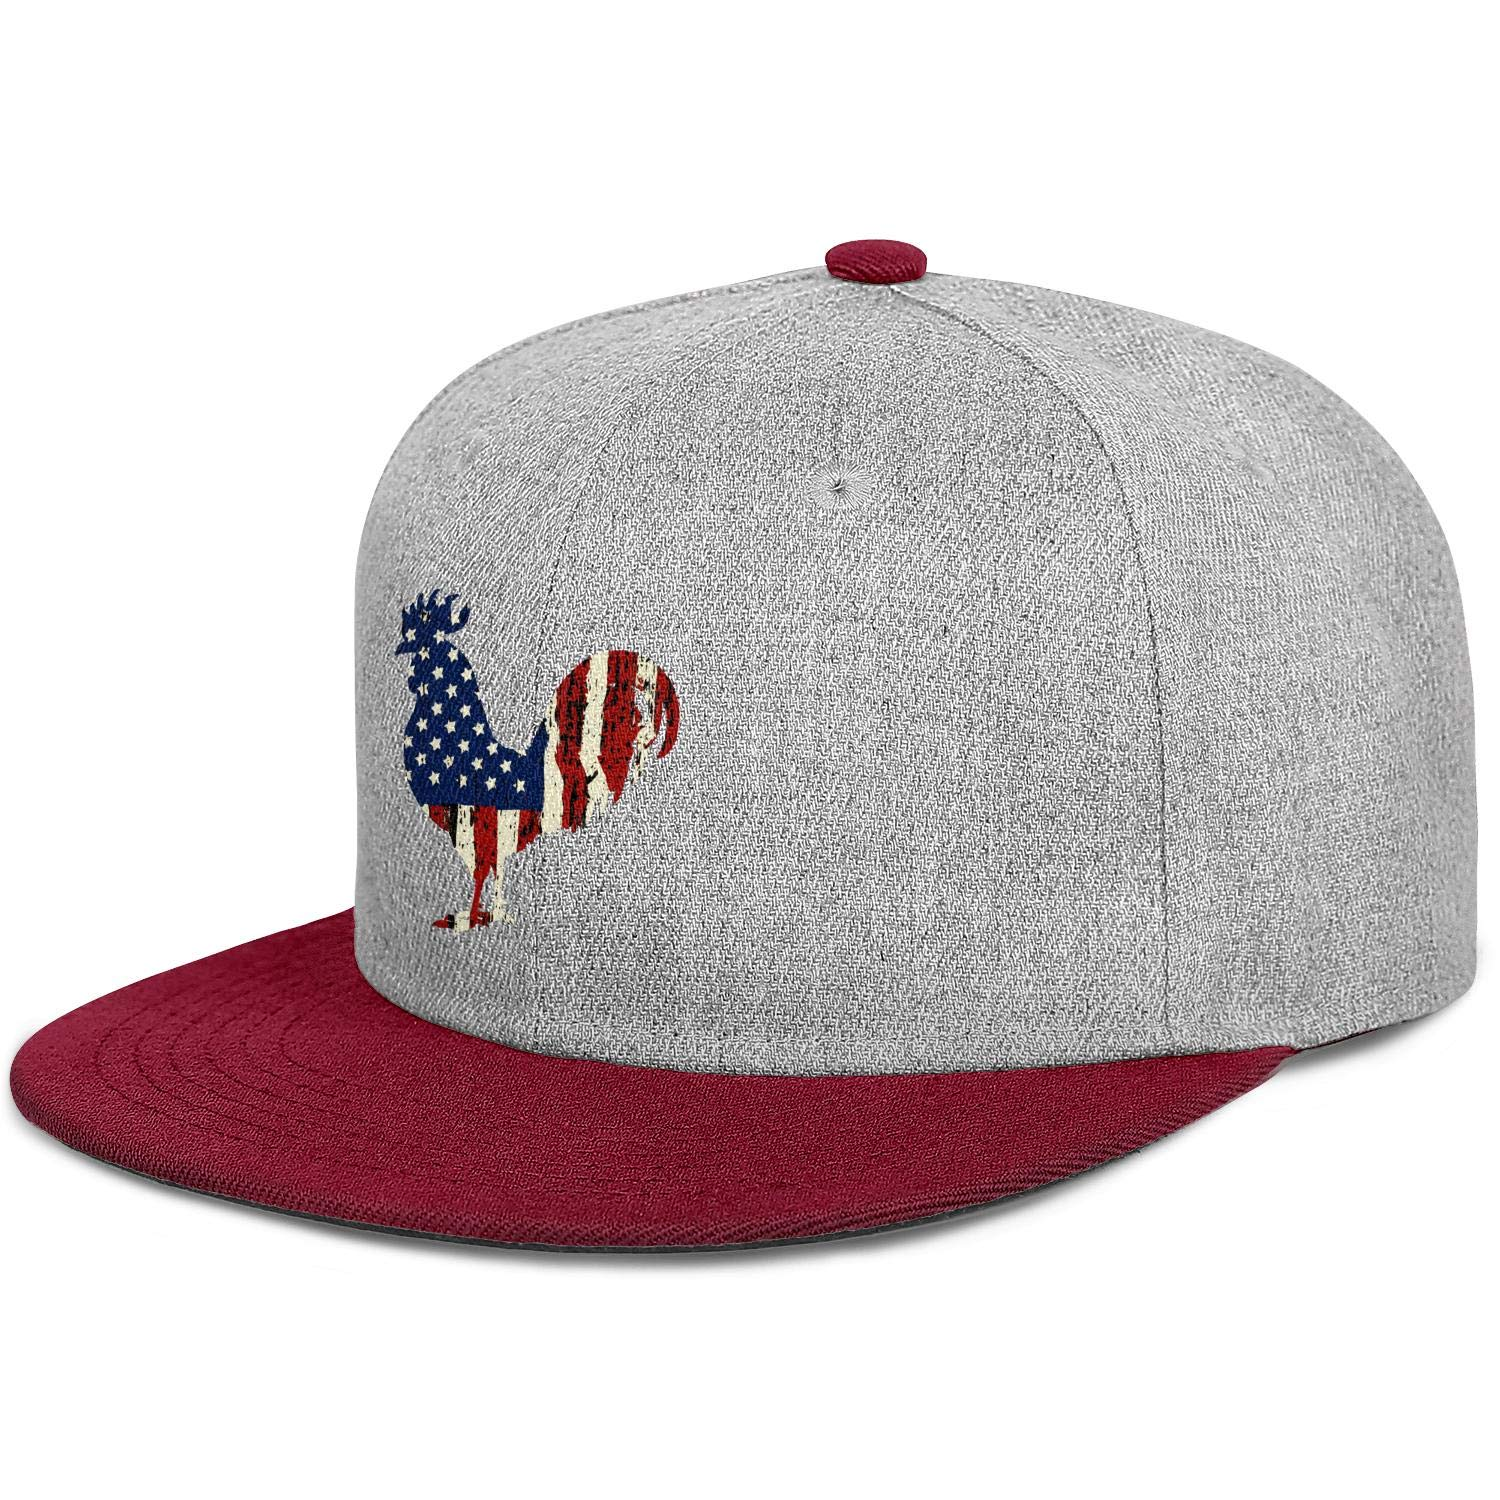 FYFYOK Mens Womens Baseball Hat American Flag and The Rooster 2018 Snapback One Size Caps